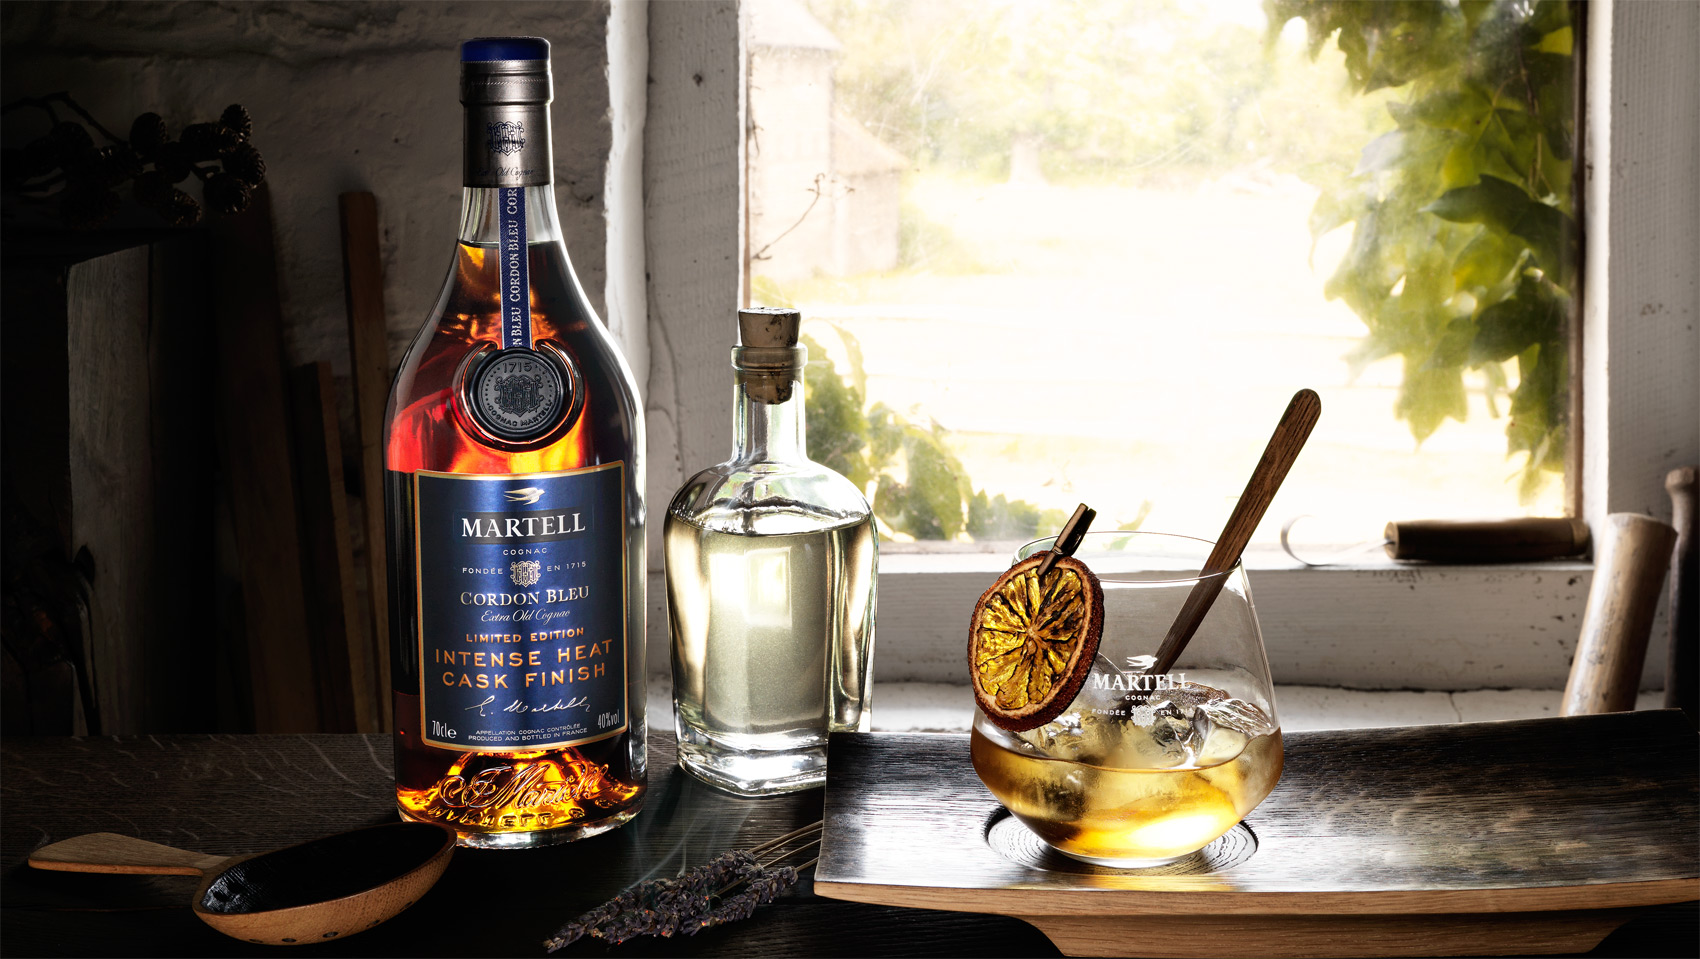 Martell Fires Up Cognac With Launch Of Cordon Bleu Intense Heat